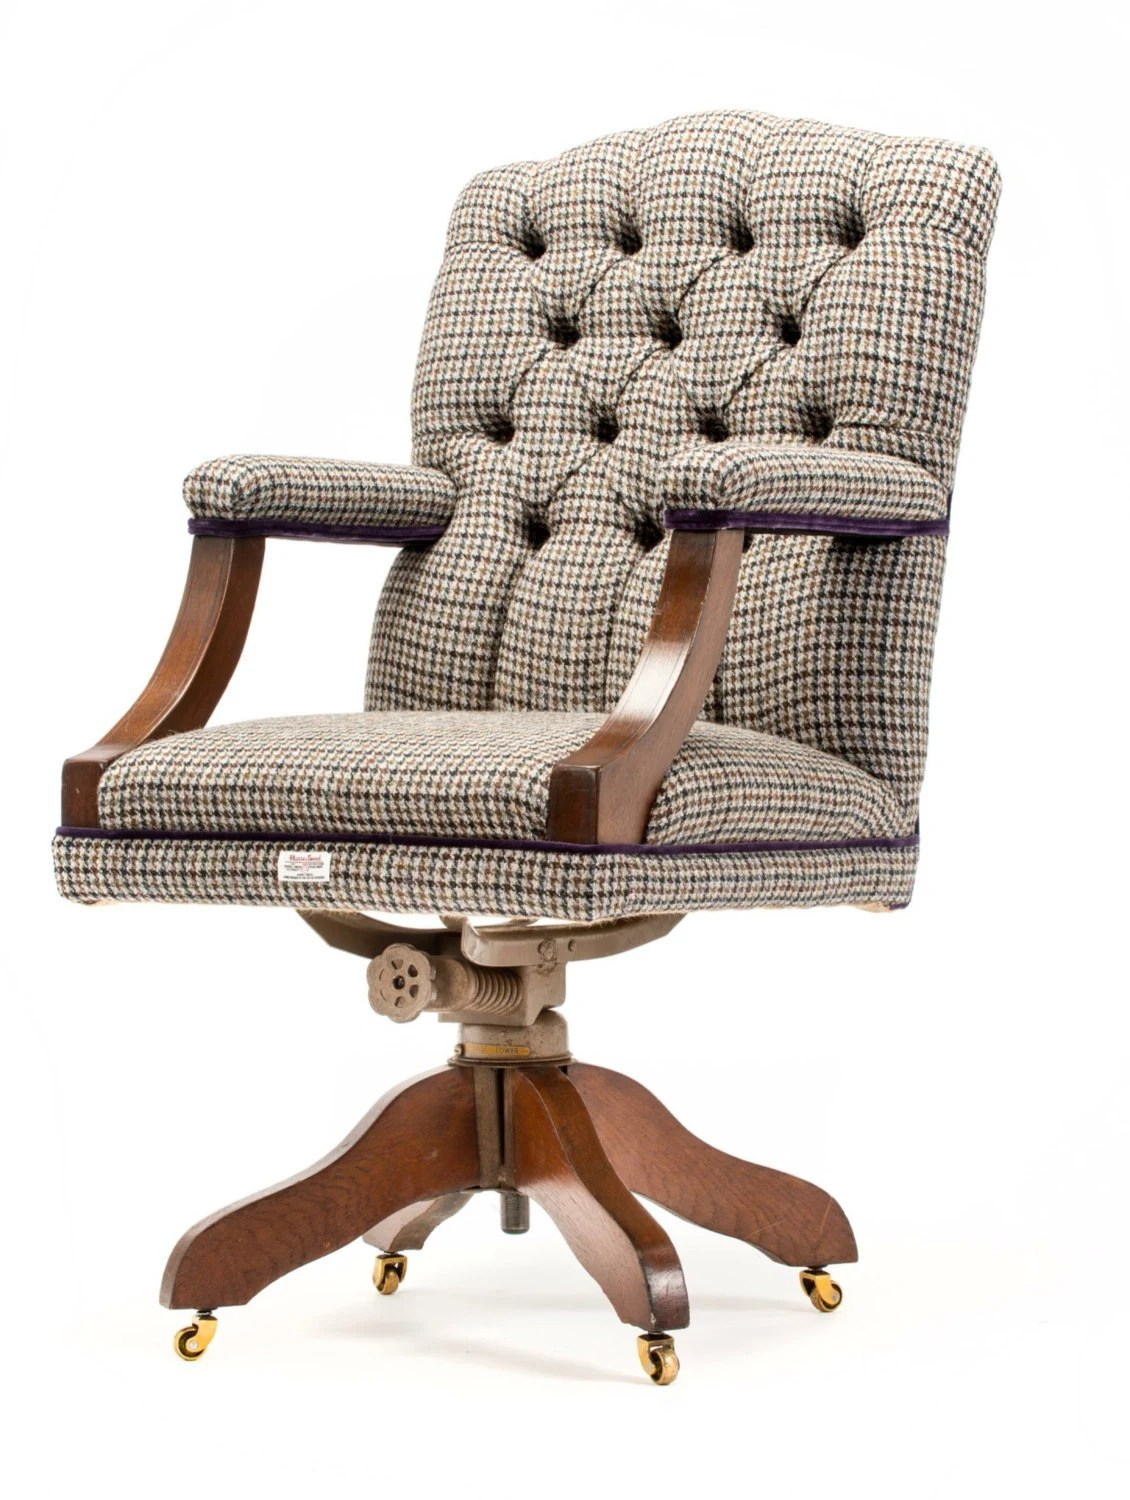 Tweed Chair Funky Retro Harris Tweed Upholstered 70 39s By